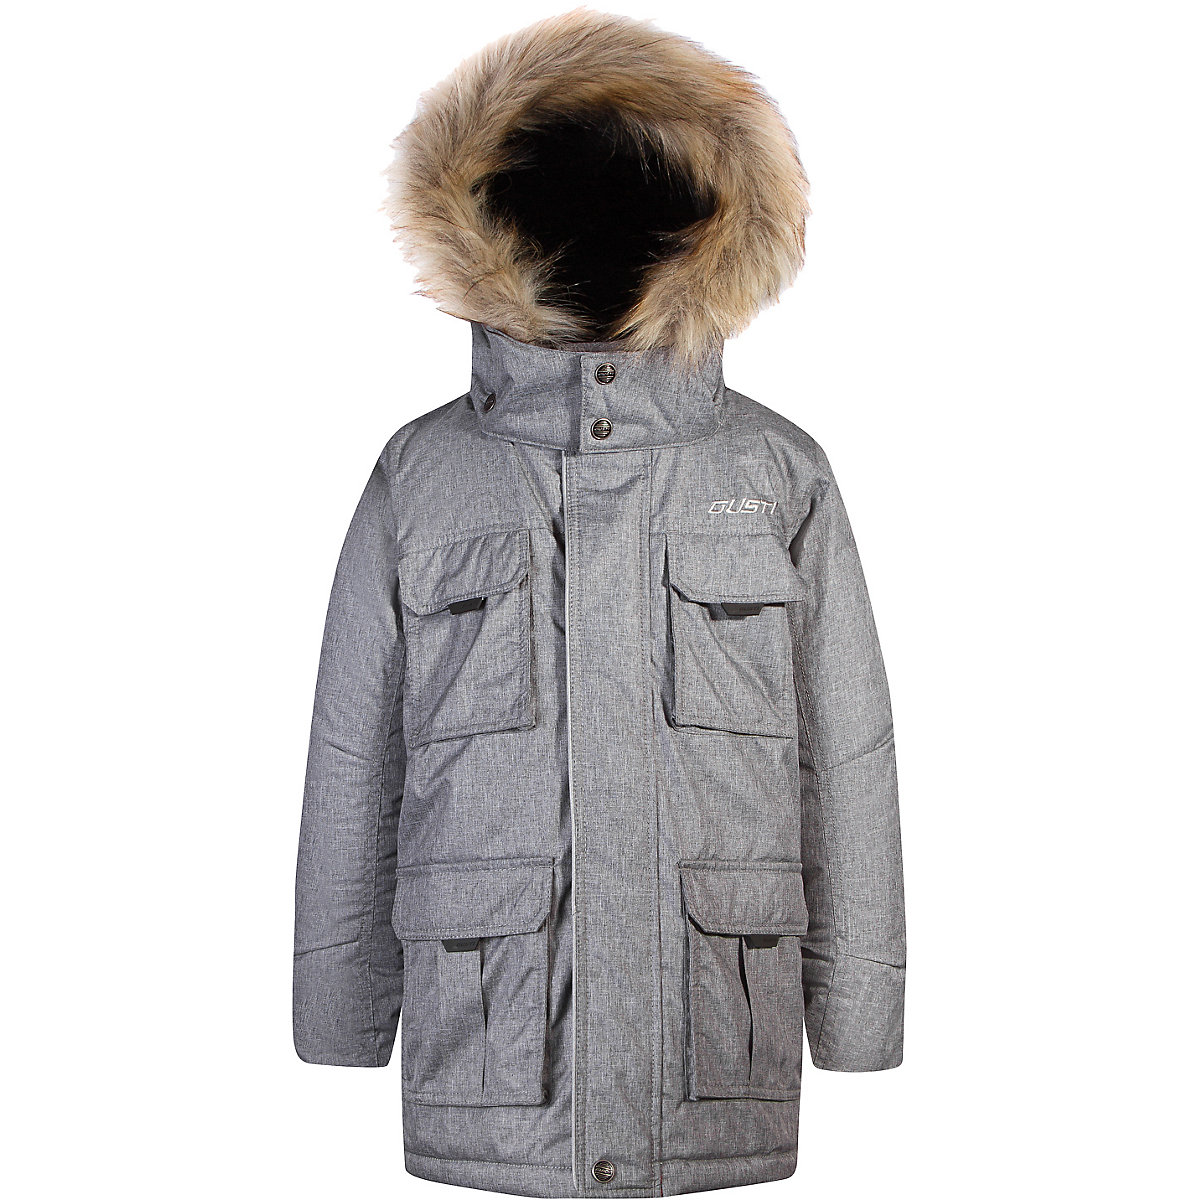 GUSTI Down & Parkas 9511975 jacket for girls winter outerwear children jackets boys clothing елена королевская азбука